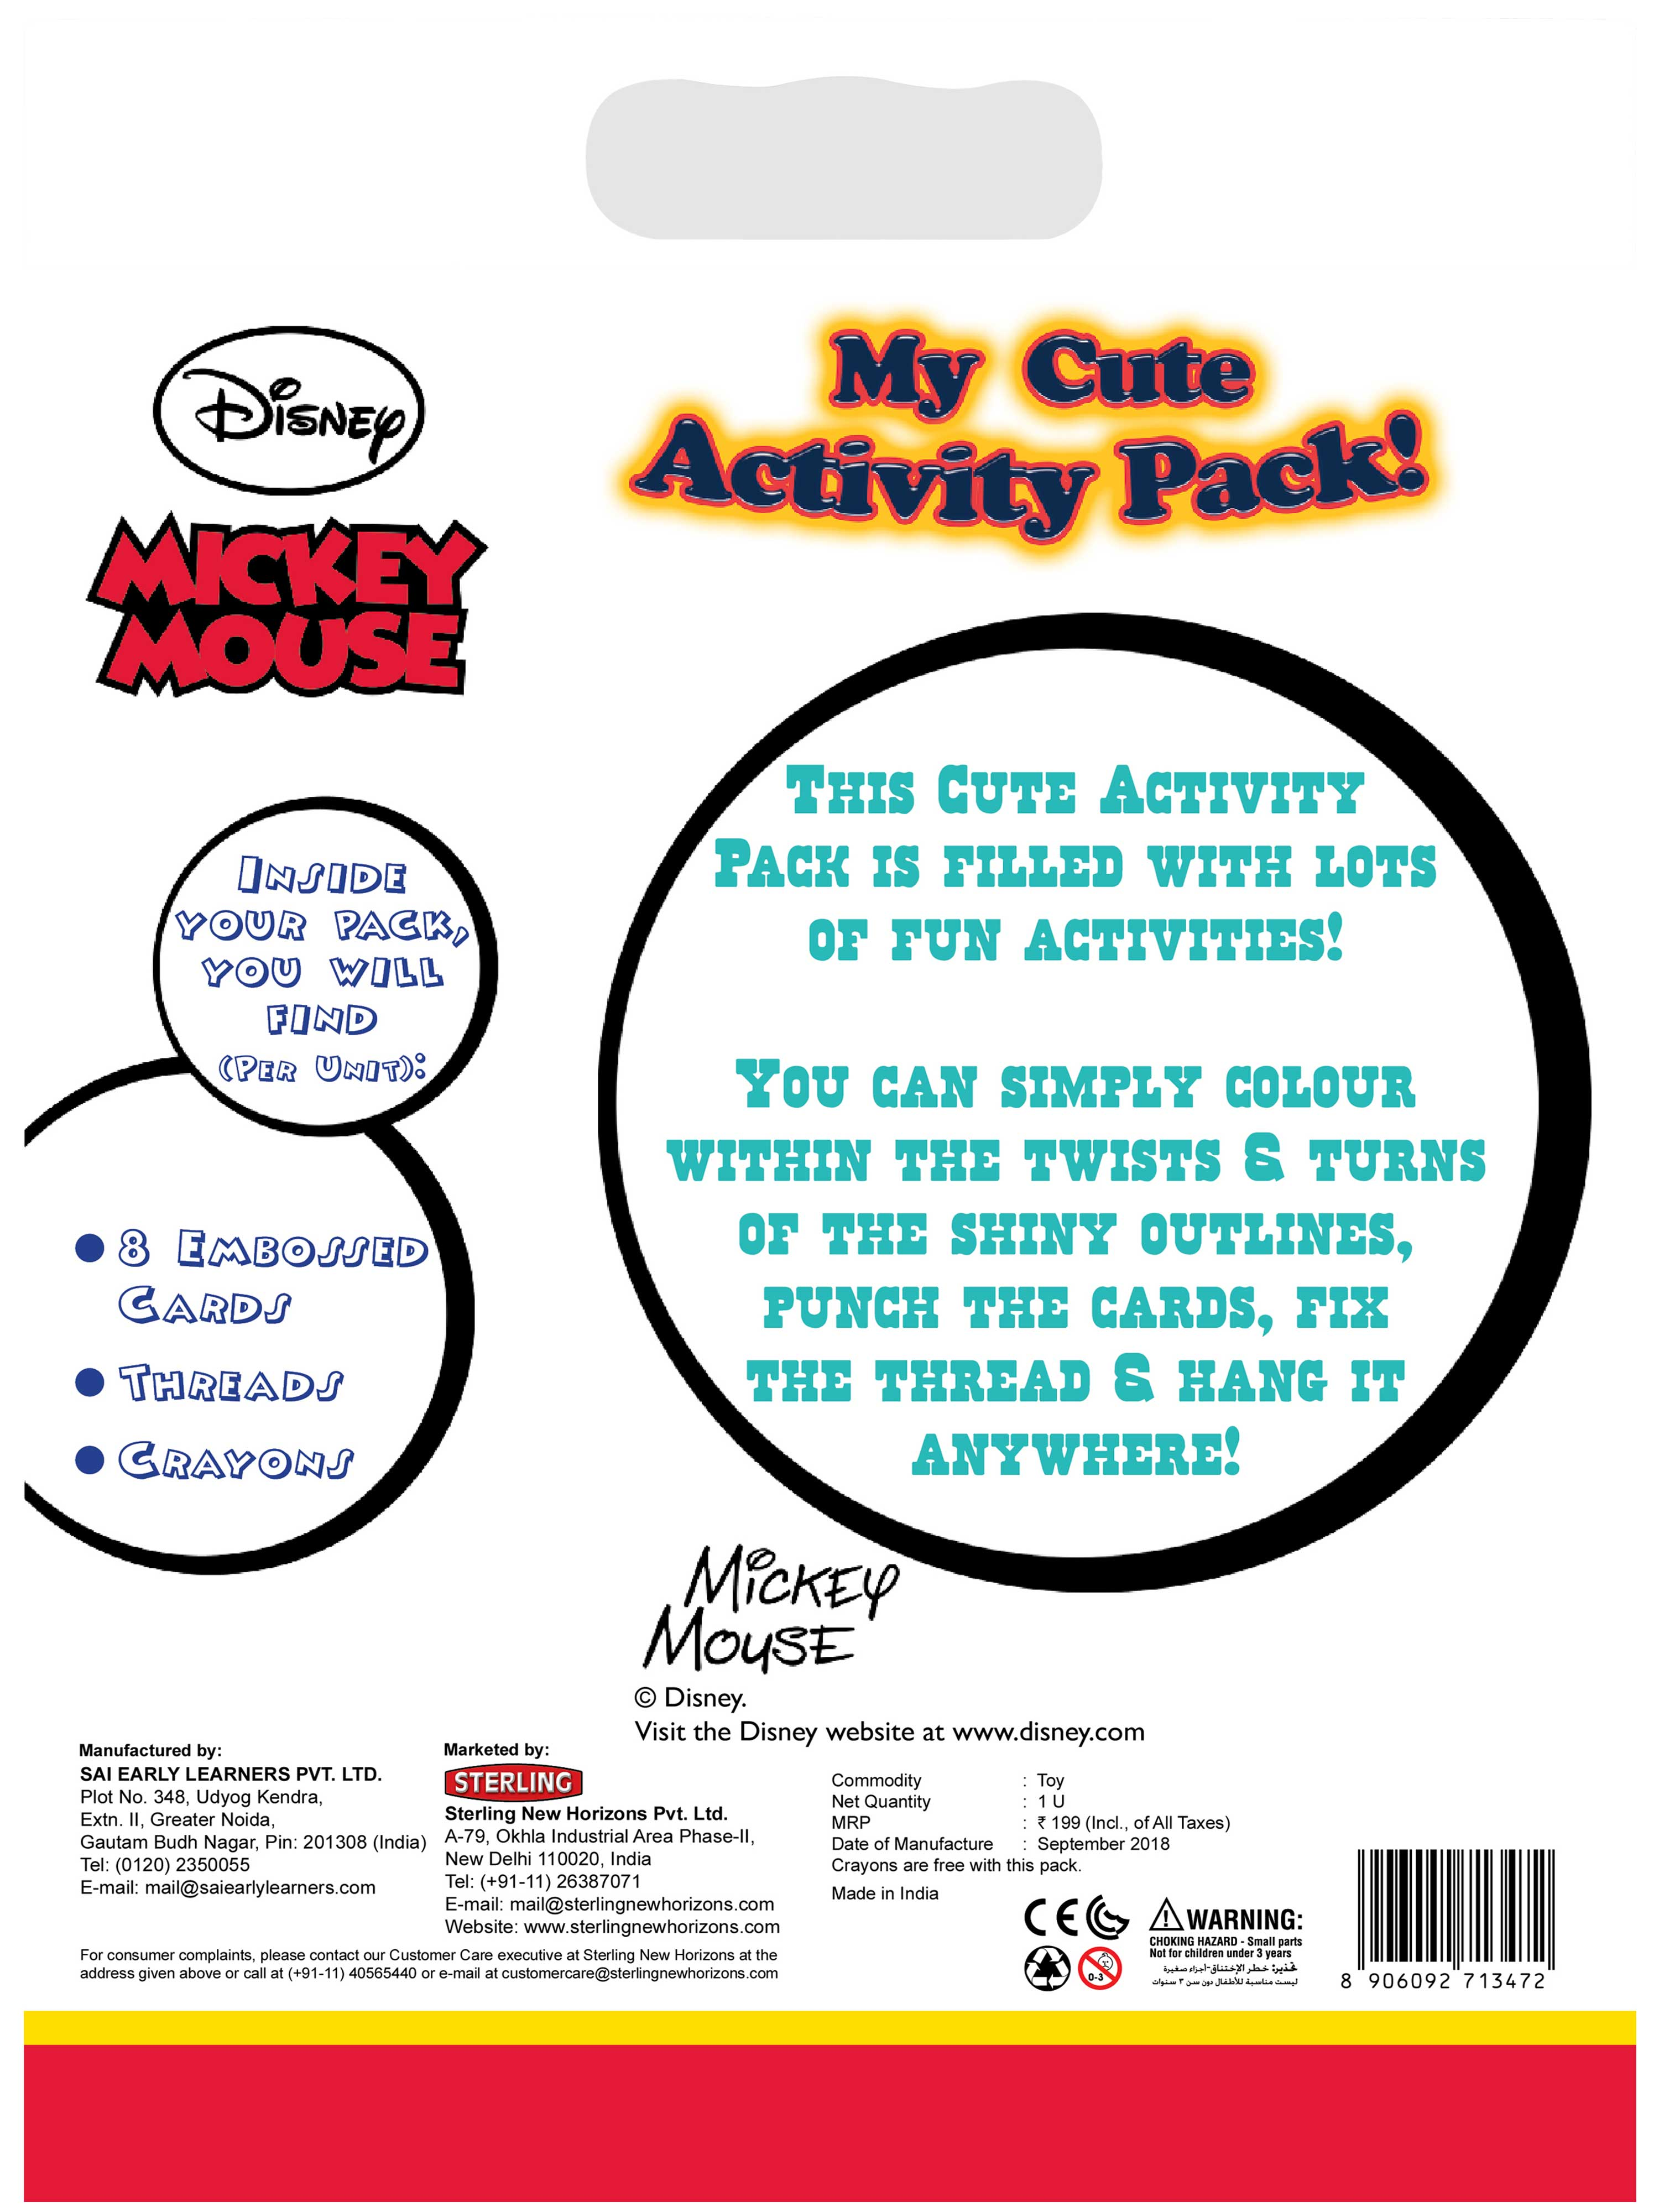 My Cute Activity Pack! Micky Mouse Bumpy